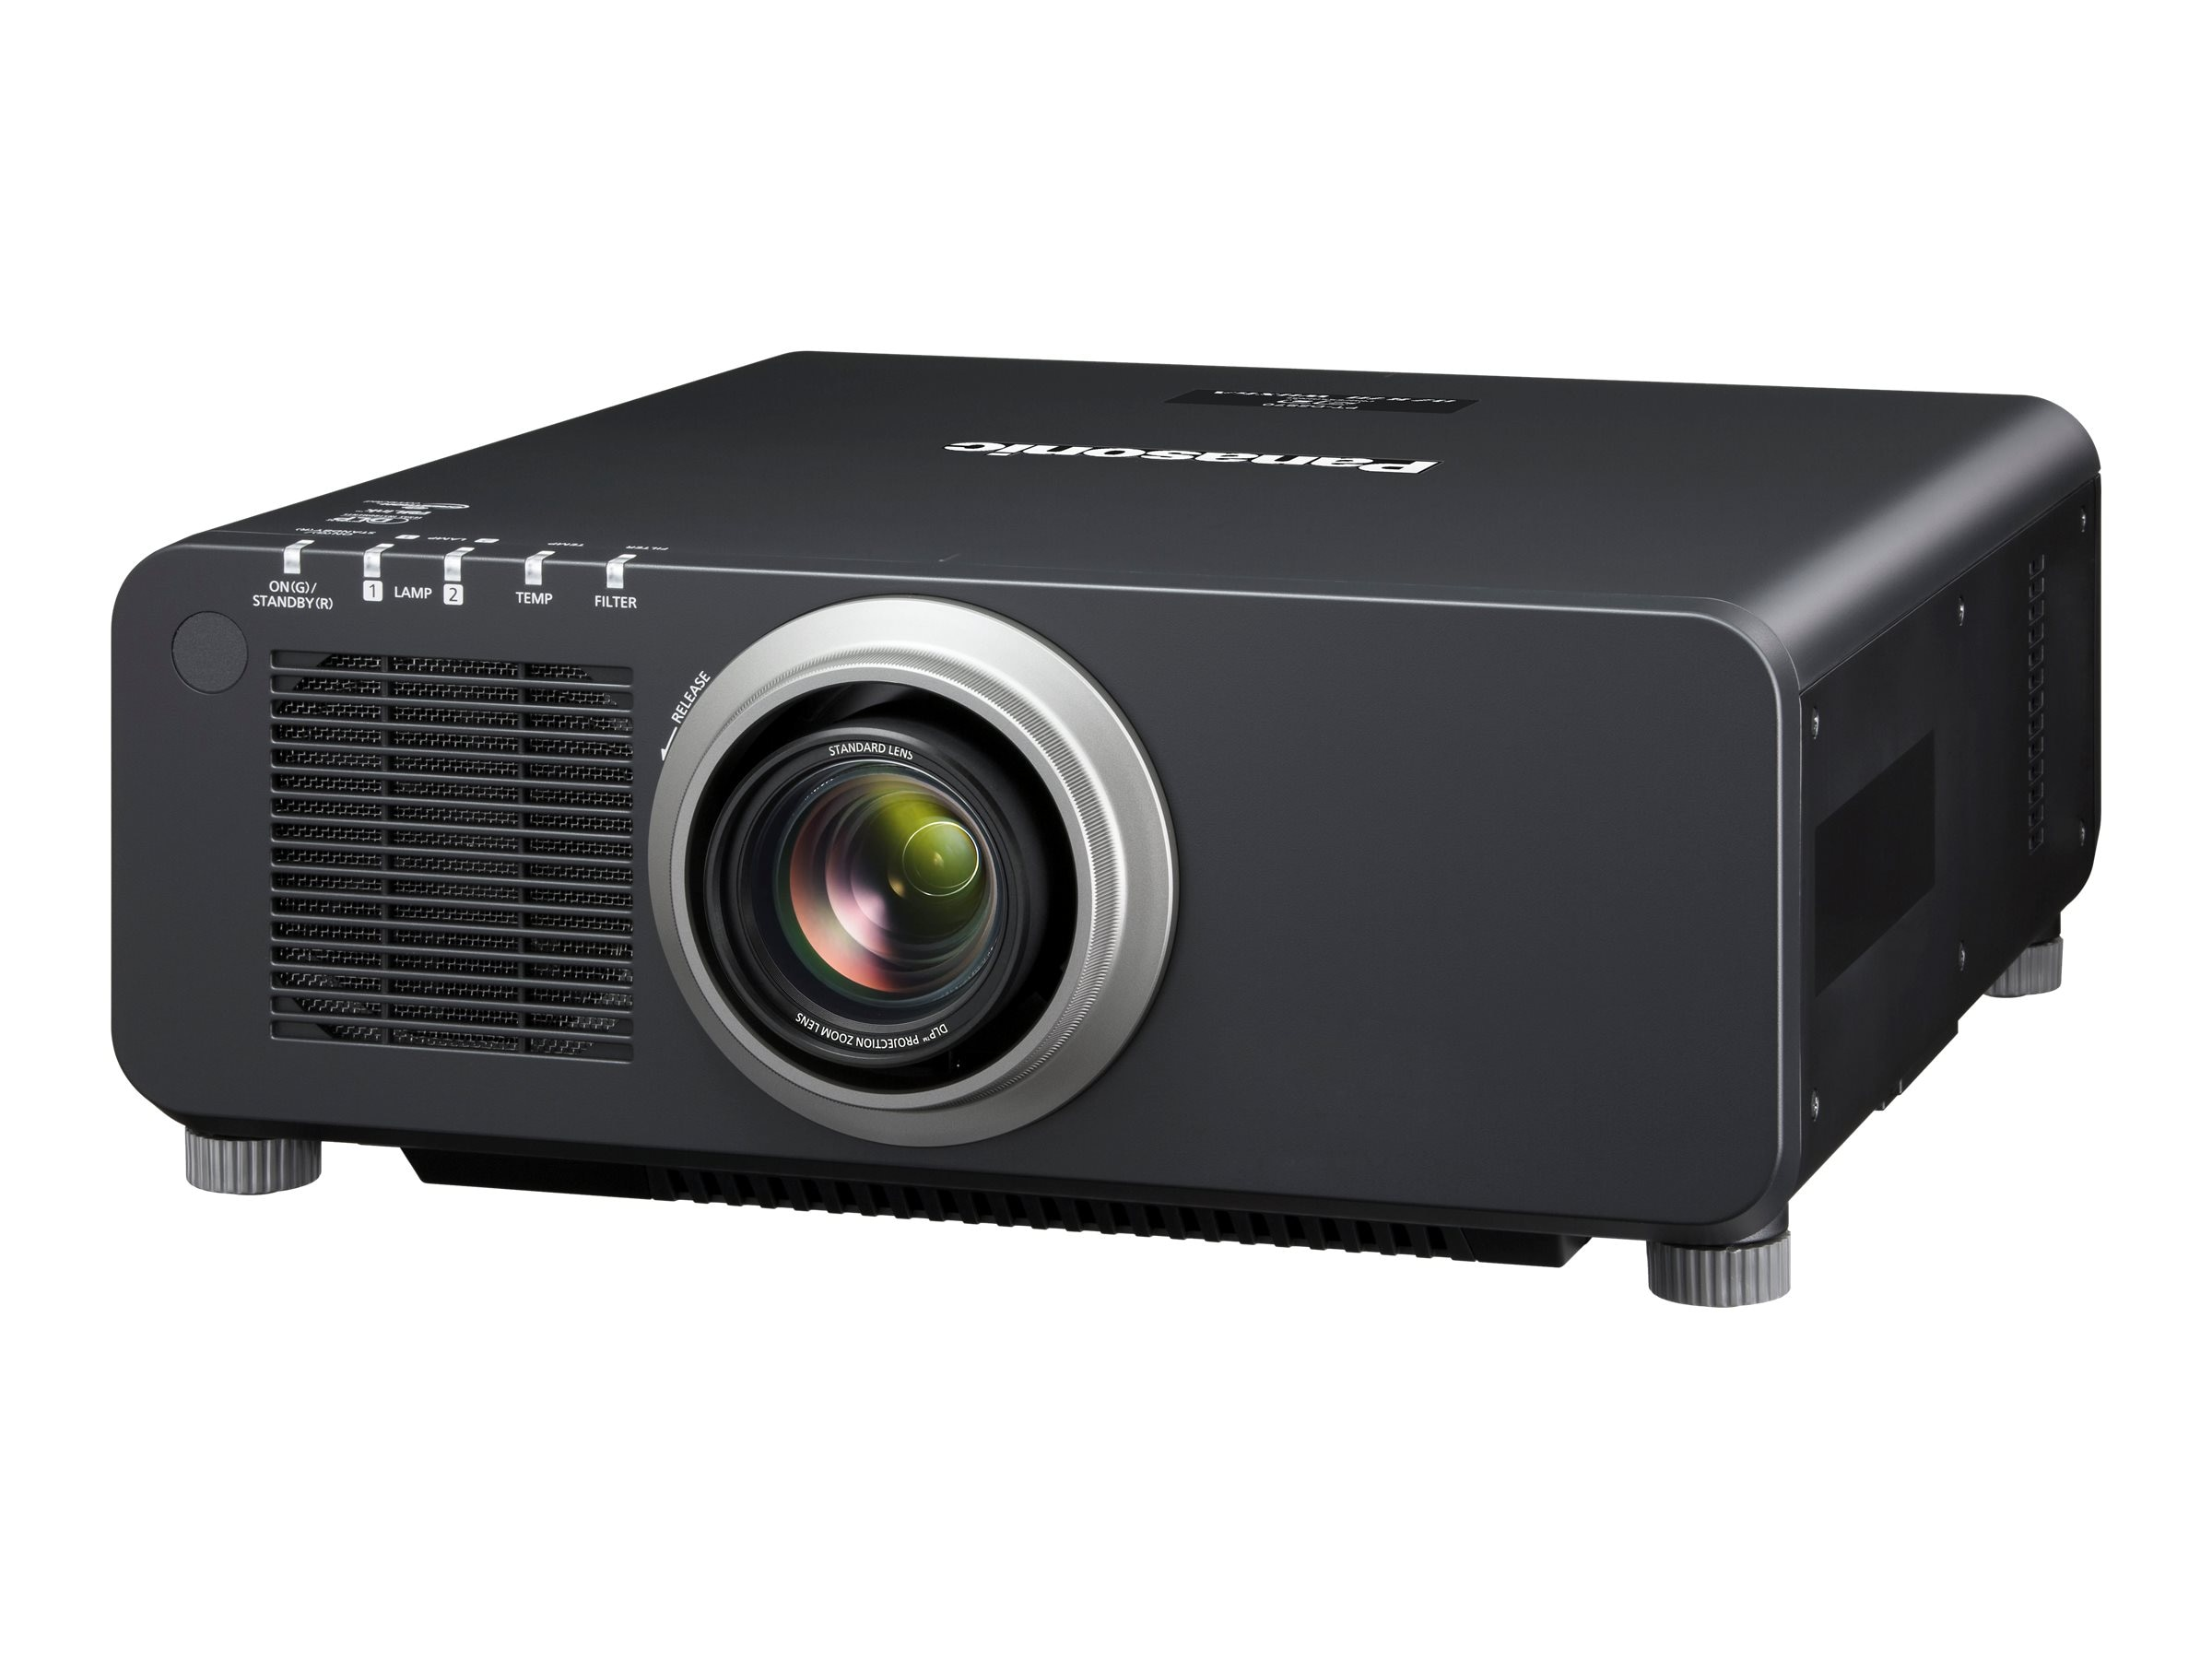 Panasonic PT-DZ870UK Image 1